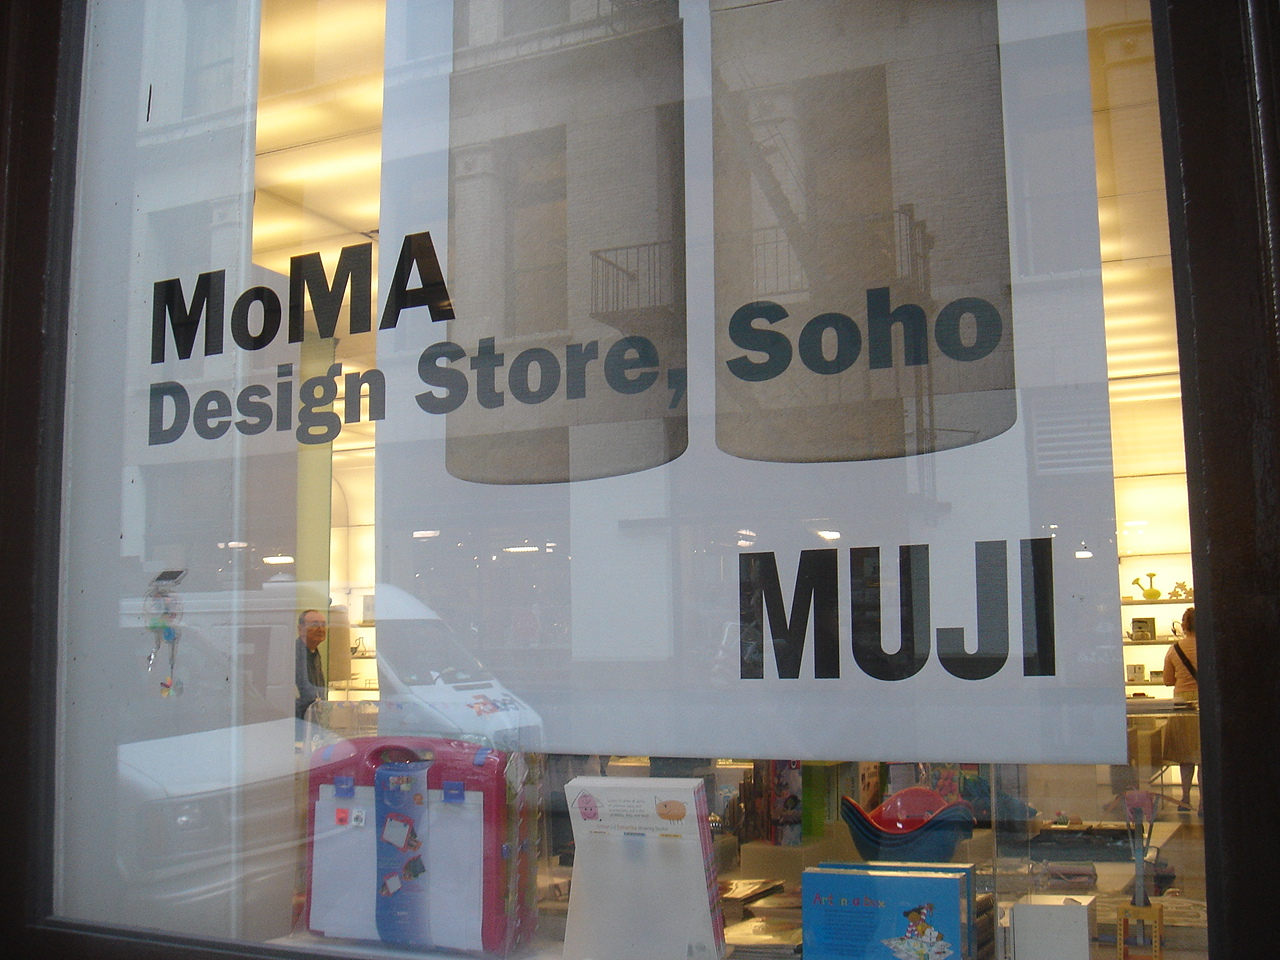 MoMA Store  Top 10 Design Stores in NYC - Part II 187894623 368a6b1603 o